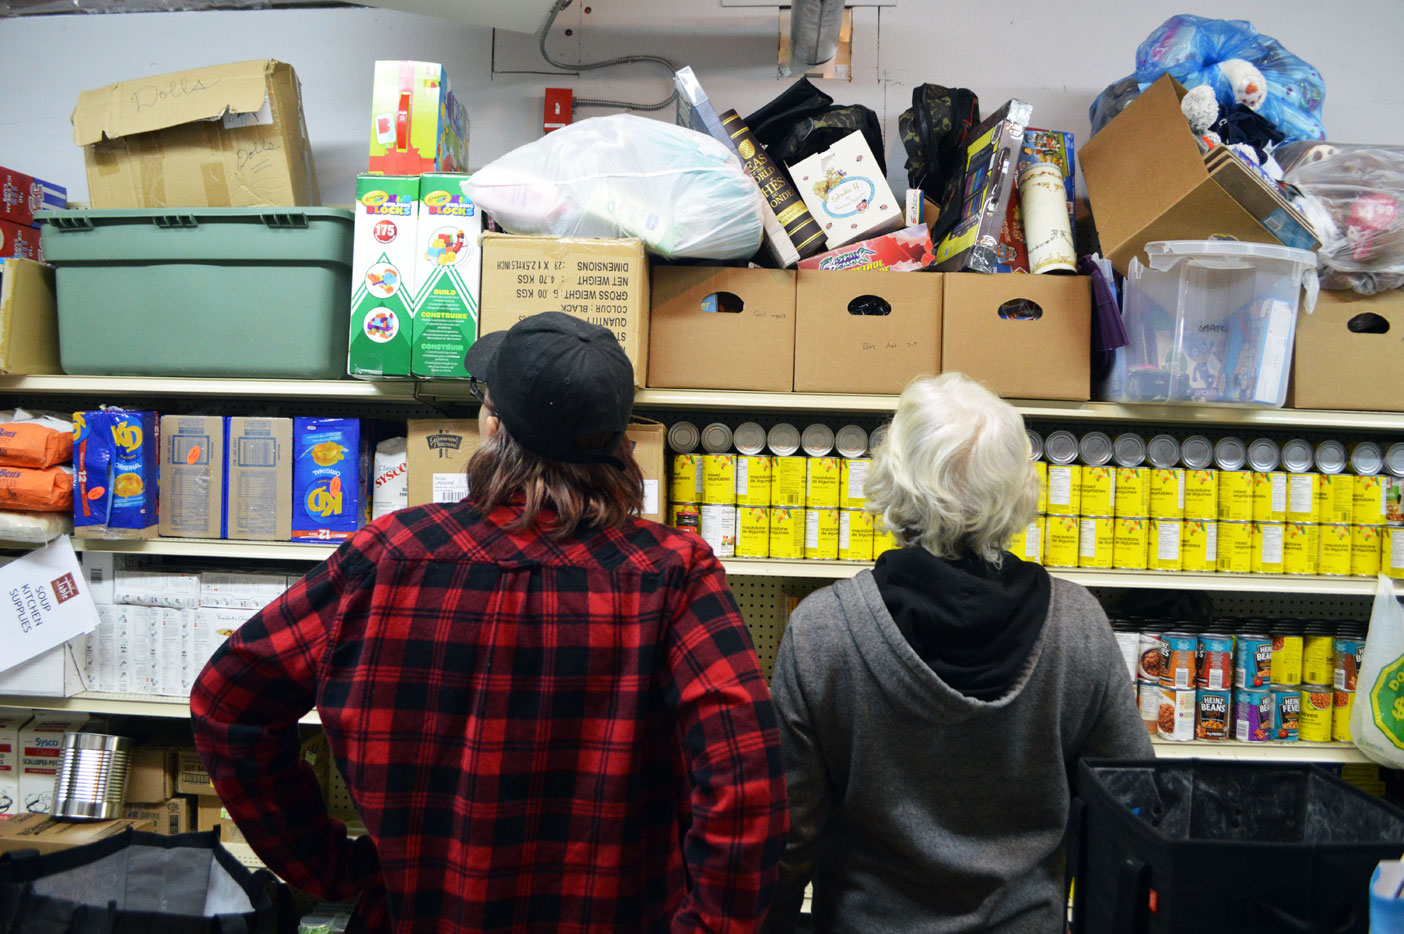 Kathy Rogers (left) and Kathy Verhey survey the donated goods. Above is a selection of presents for special occasions like birthdays and anniversaries.